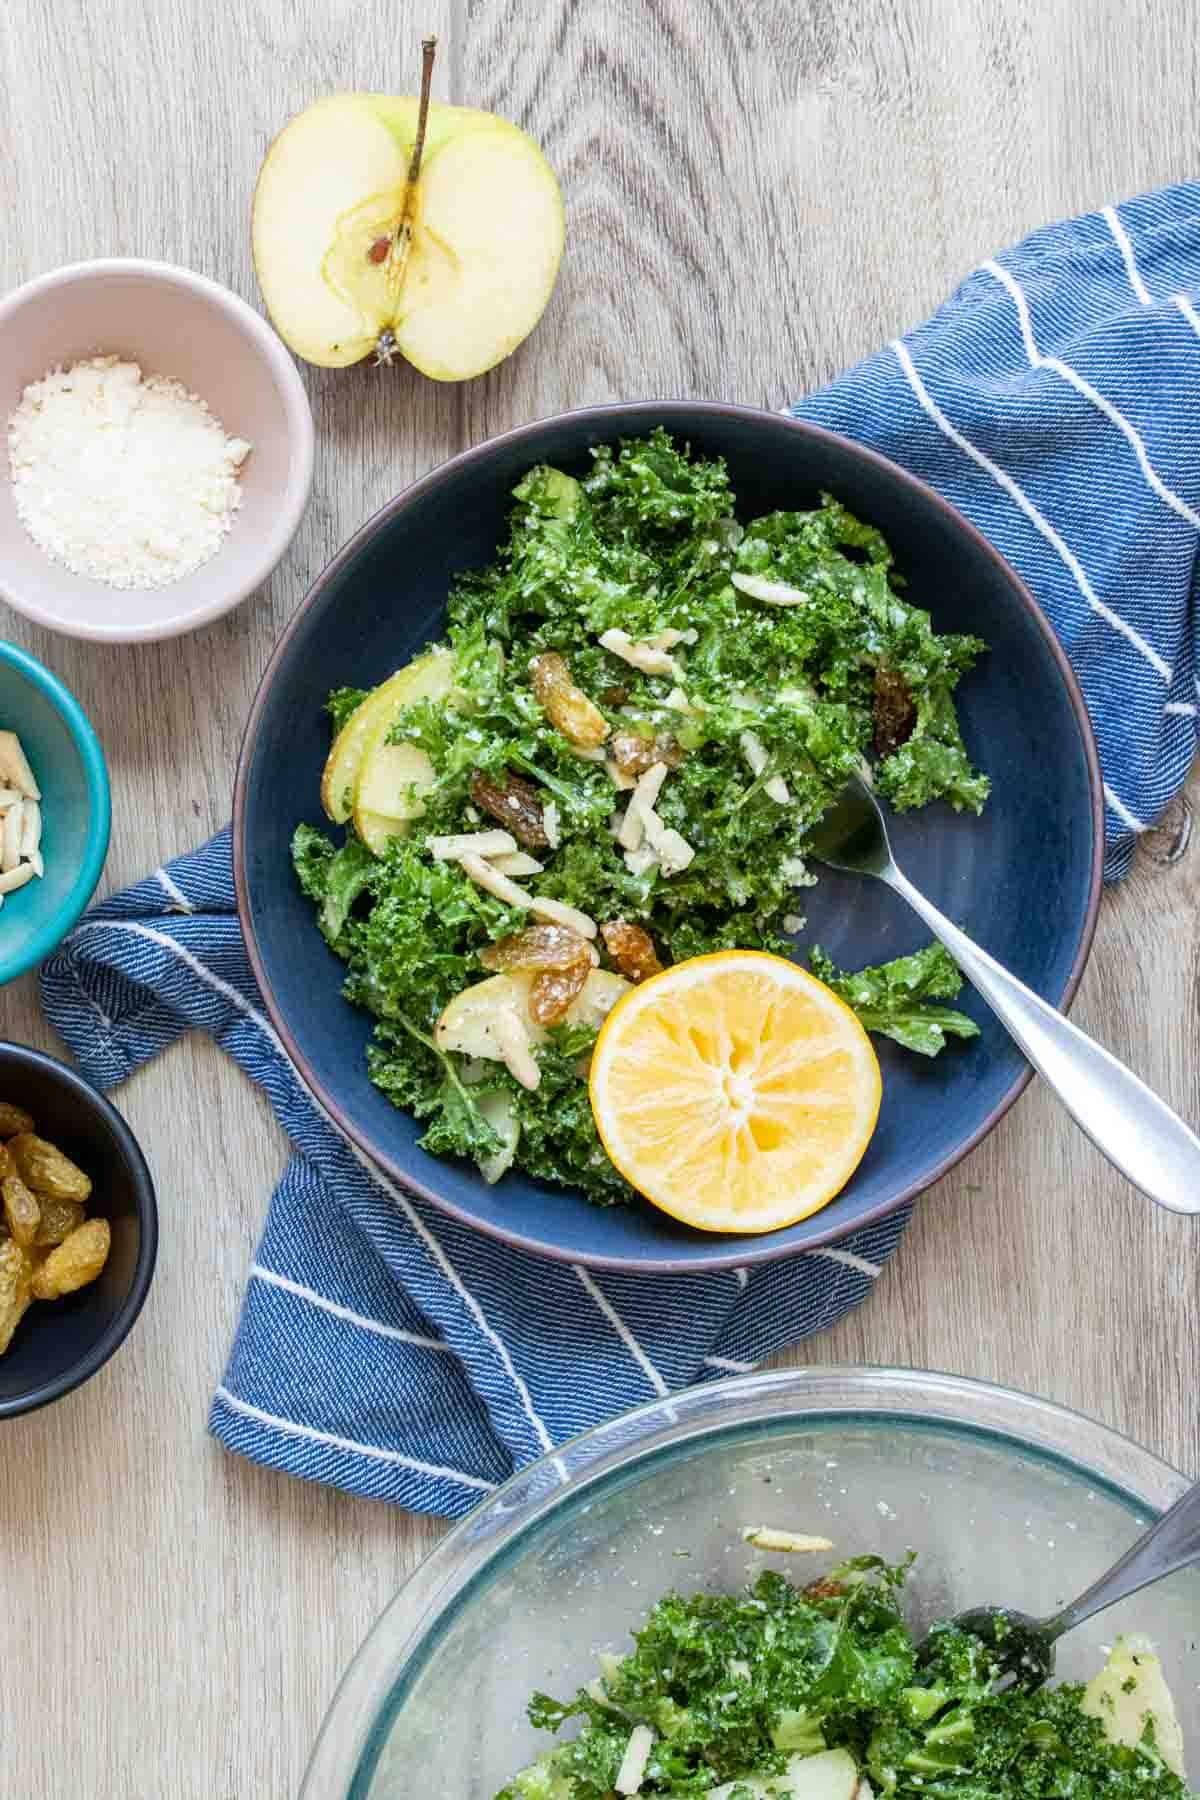 Blue bowl filled with kale salad surrounded by bowls of toppings